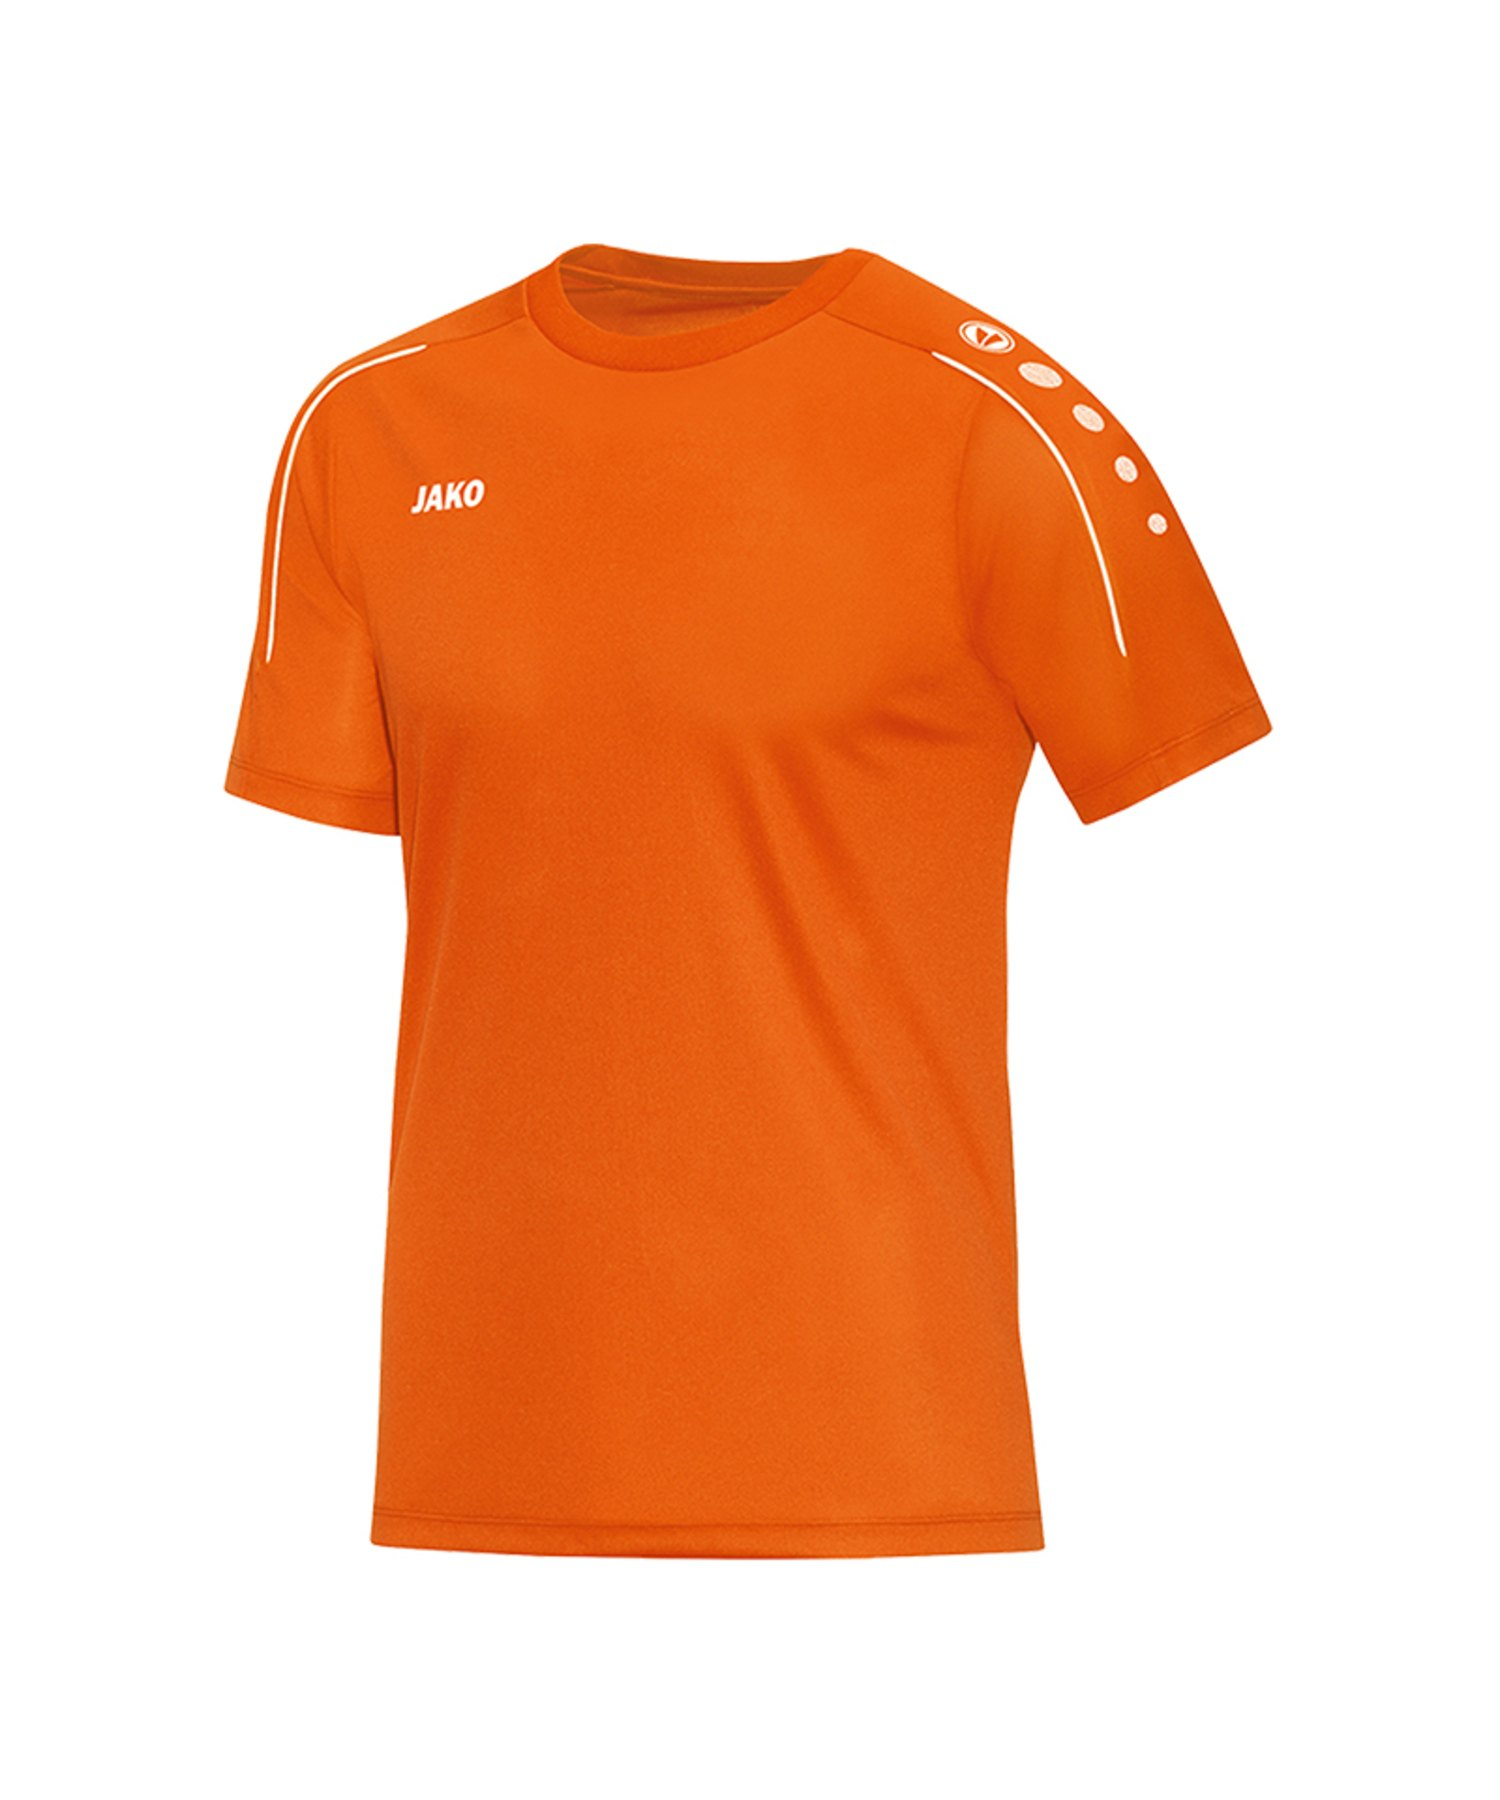 Jako Classico T-Shirt Orange F19 - Orange